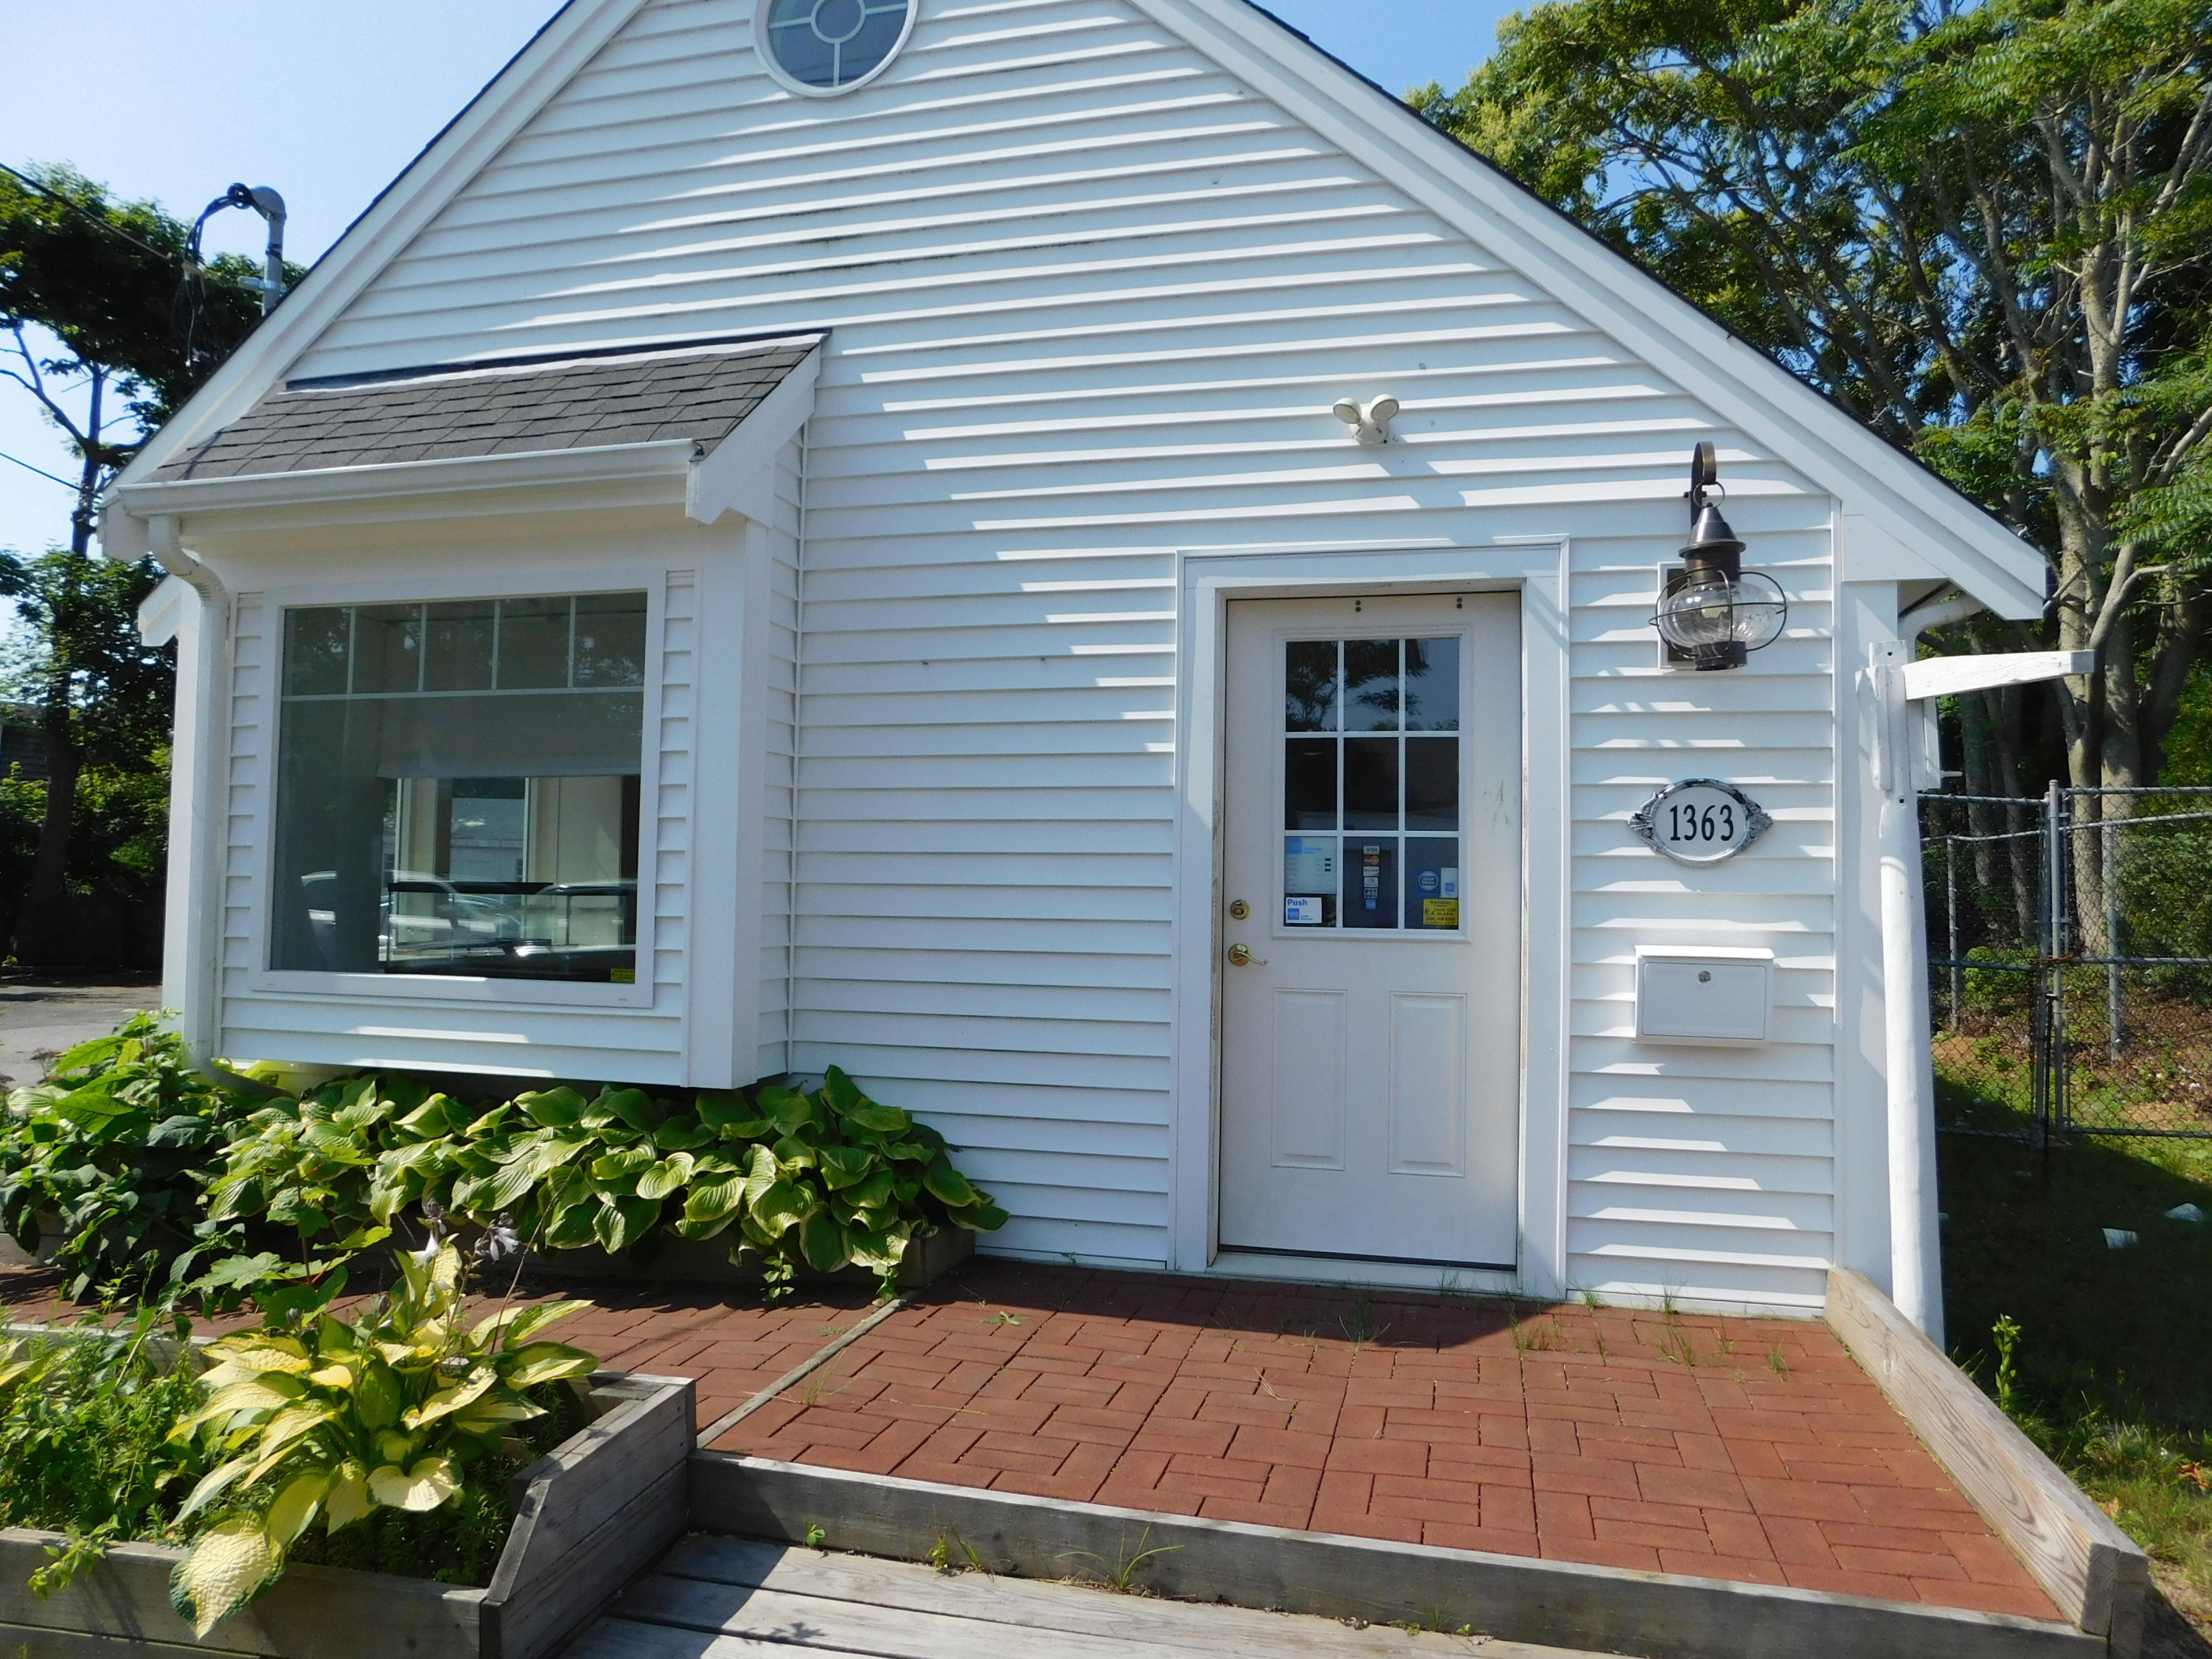 Opportunity to own Retail/Office space at one of the busiest intersections on Cape Cod. Put your business in this high-profile location. This lot consists of two buildings plus two outbuildings. #1361 was built new in 2015. It features over 900 sq Ft. of workspace. Handicap accessible, plenty of parking, central air conditioning, security, and fire alarm systems installed. New septic system in 2015. Large full basement with plenty of room for inventory or storage. The second building, #1363, has 544 sq. Ft of space and is ready to be renovated for more retail/office space. #1363 needs work, and this is reflected in the listing price. The property is very close to the Bass River and the new waterfront park. Buyers/buyers agent to verify all information contained herein. Buyer agent/facilitators must be present all showings.